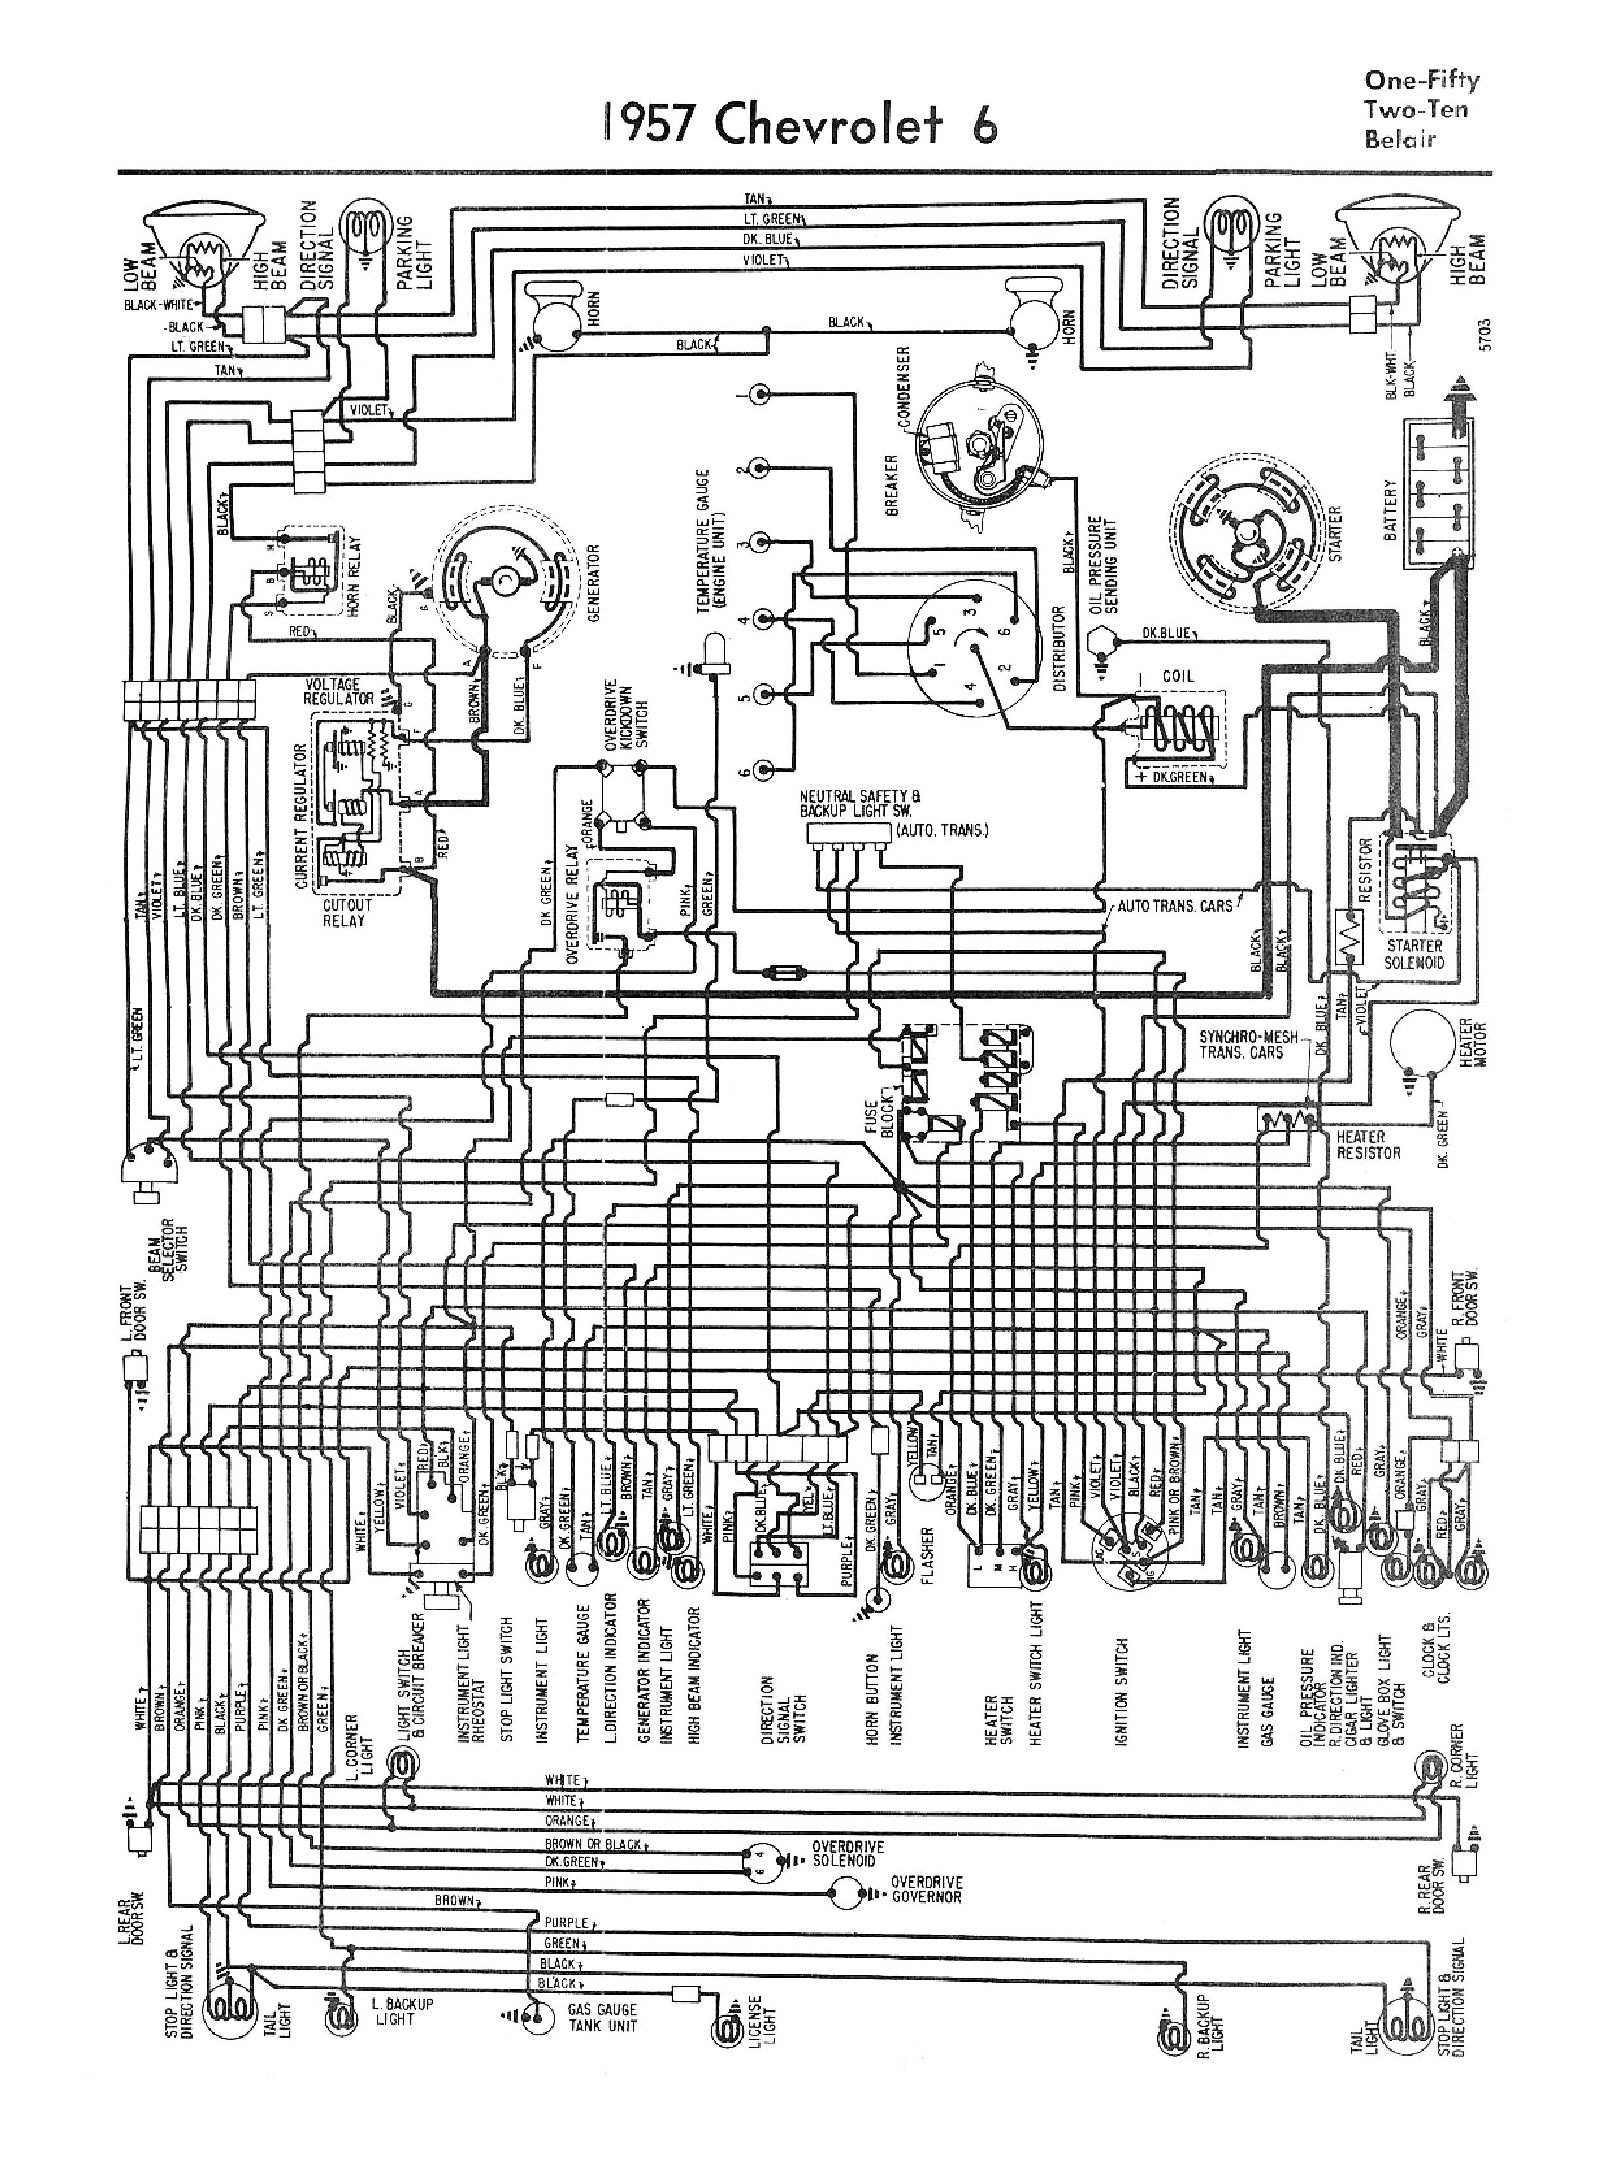 57v6 chevy wiring diagrams 1960 corvette wiring diagram at aneh.co